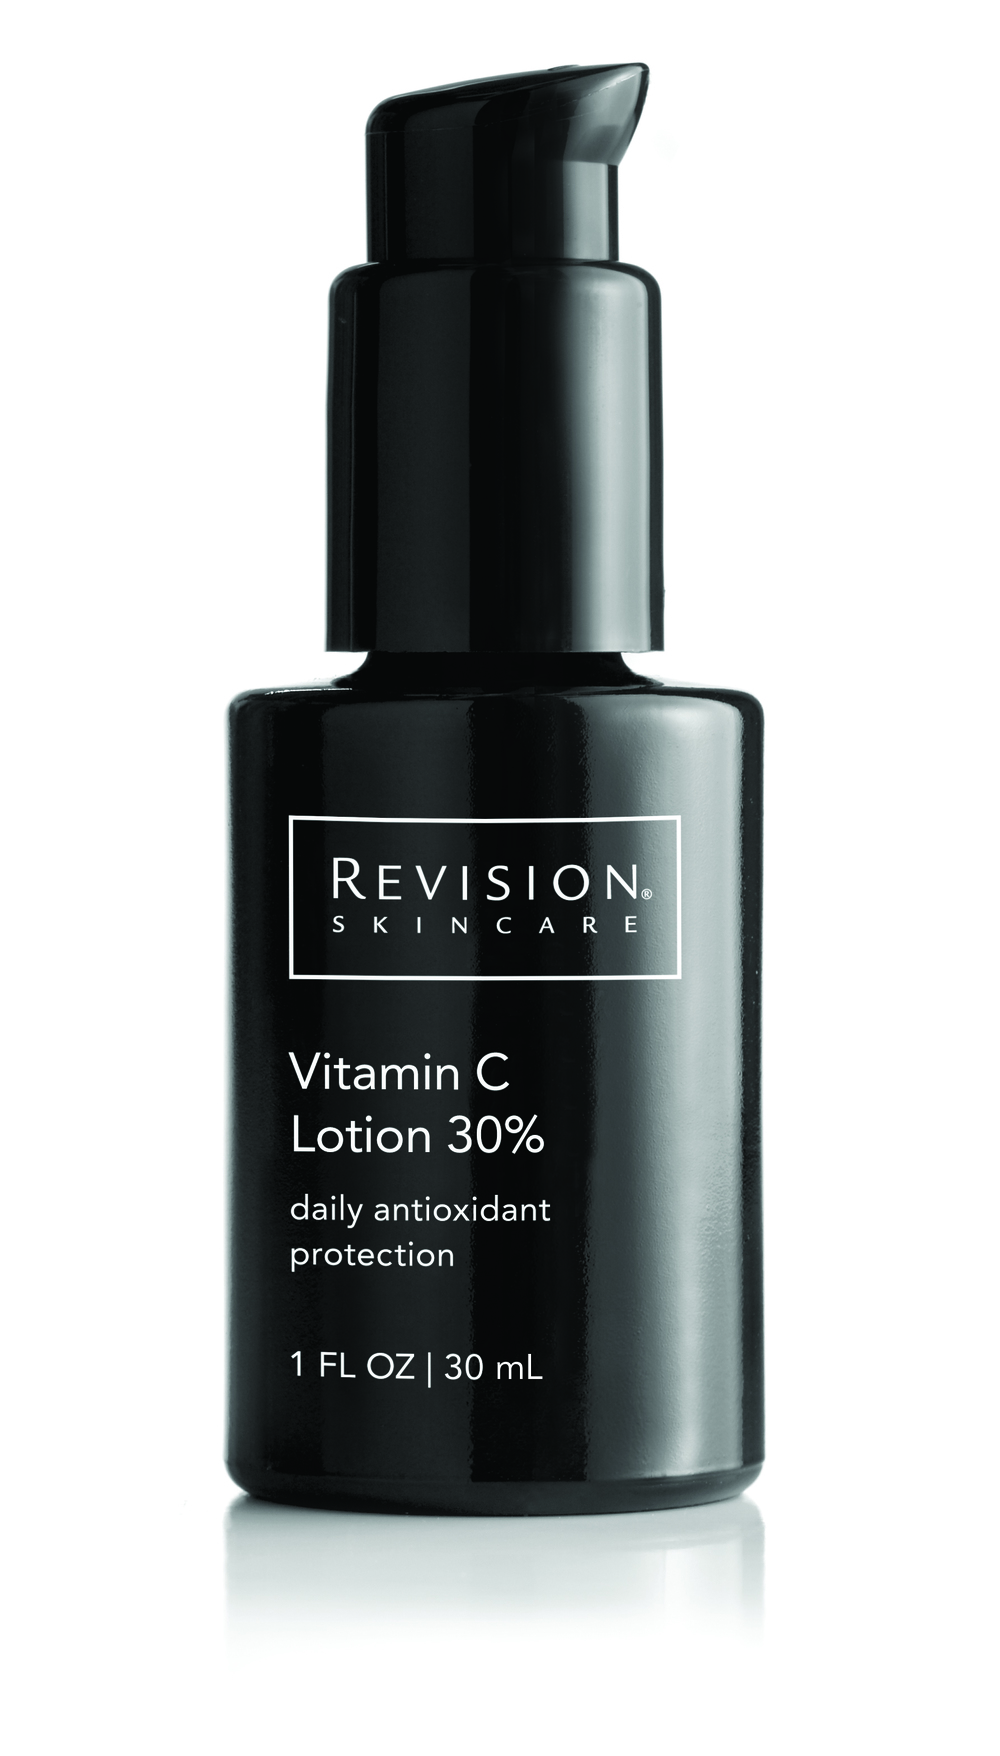 Vitamin C Lotion 30%